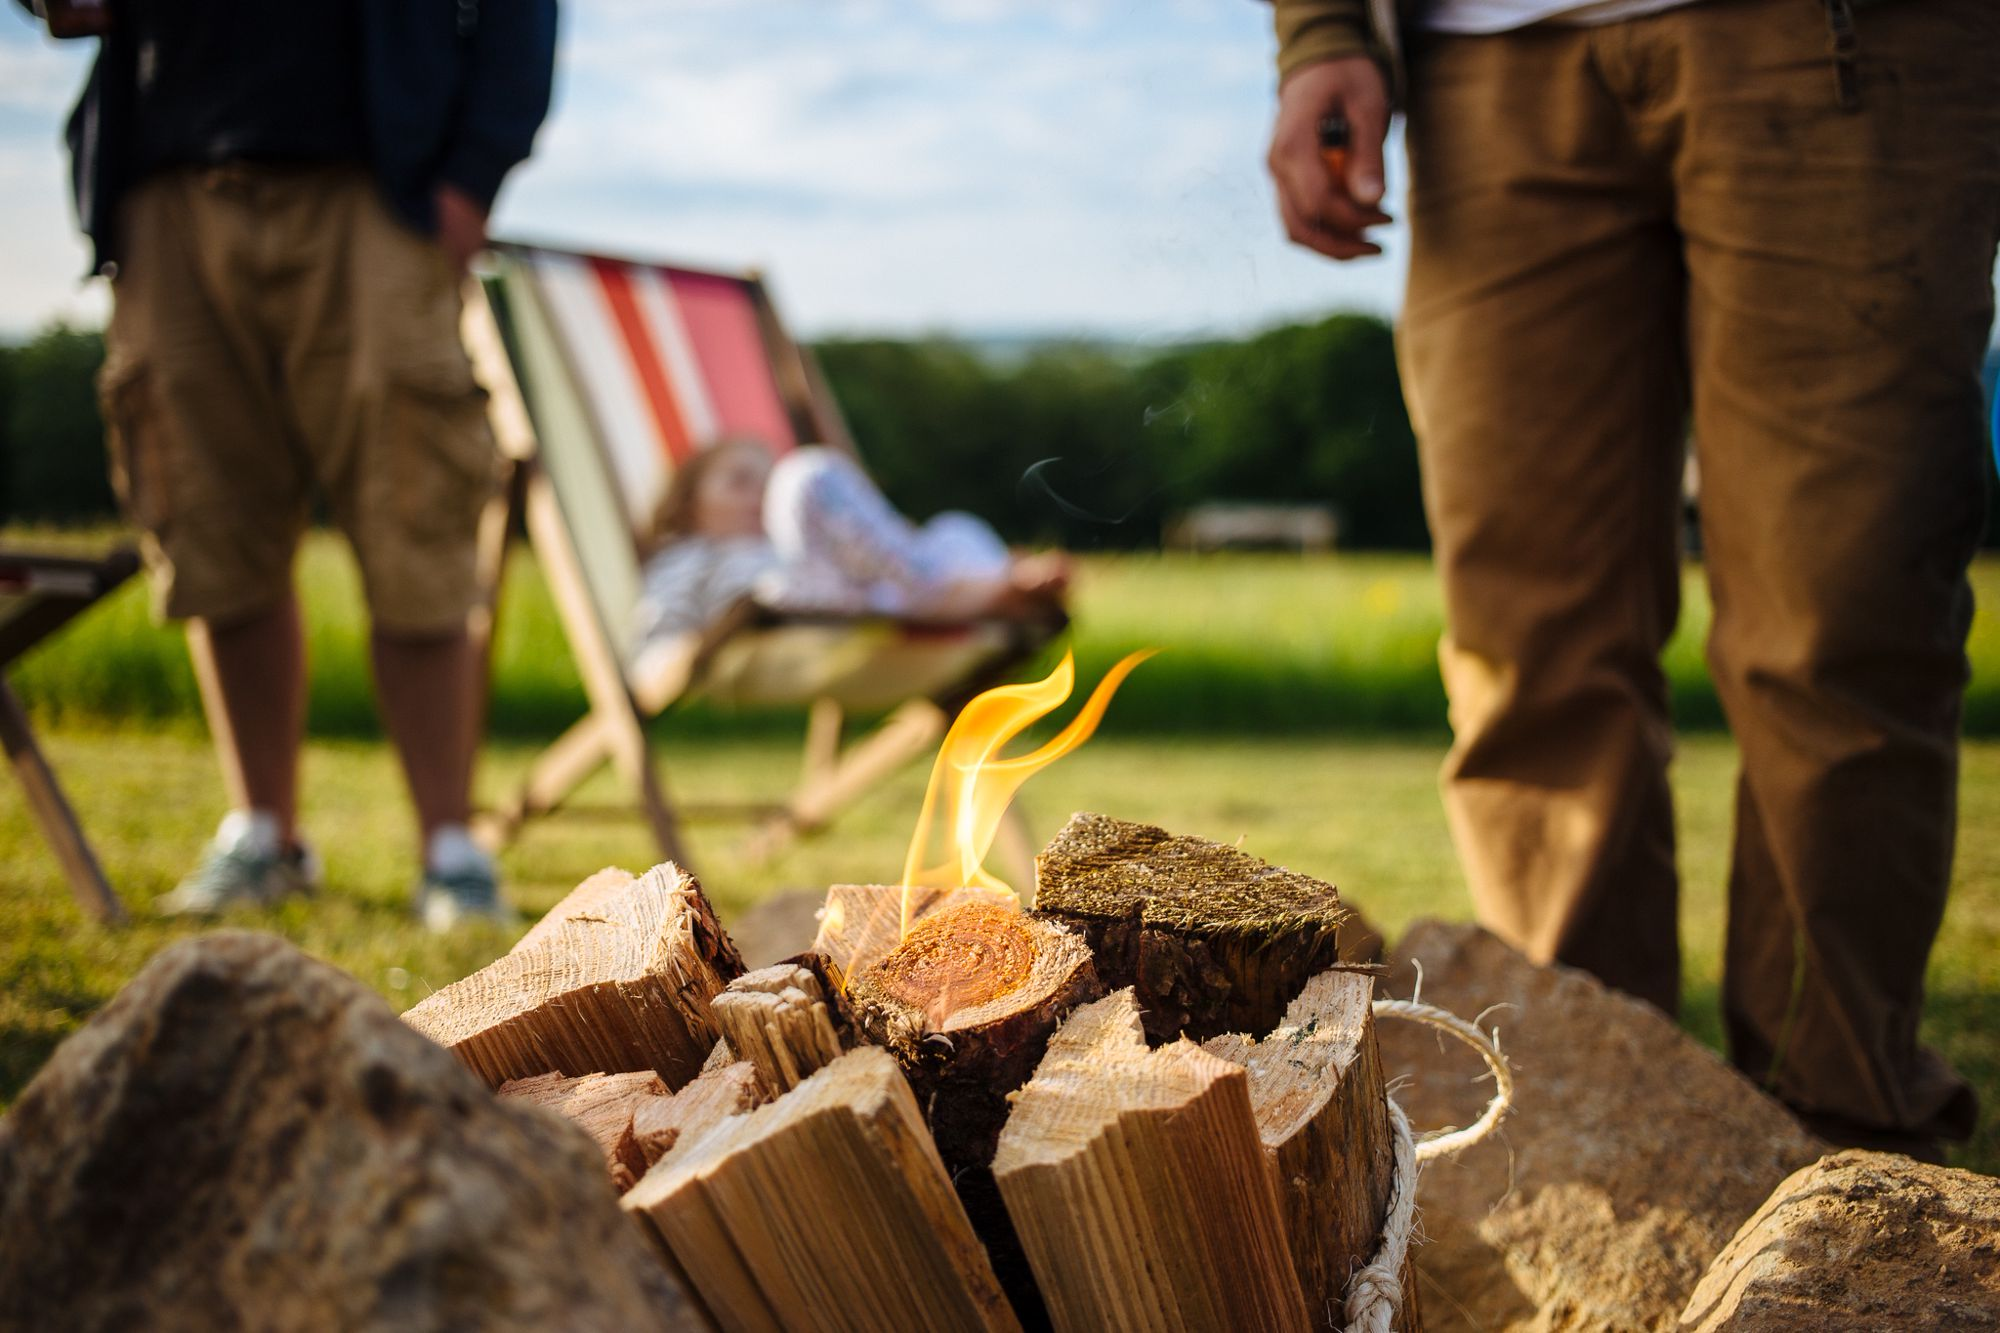 Campfire-friendly campsites in North Wales – campfires allowed